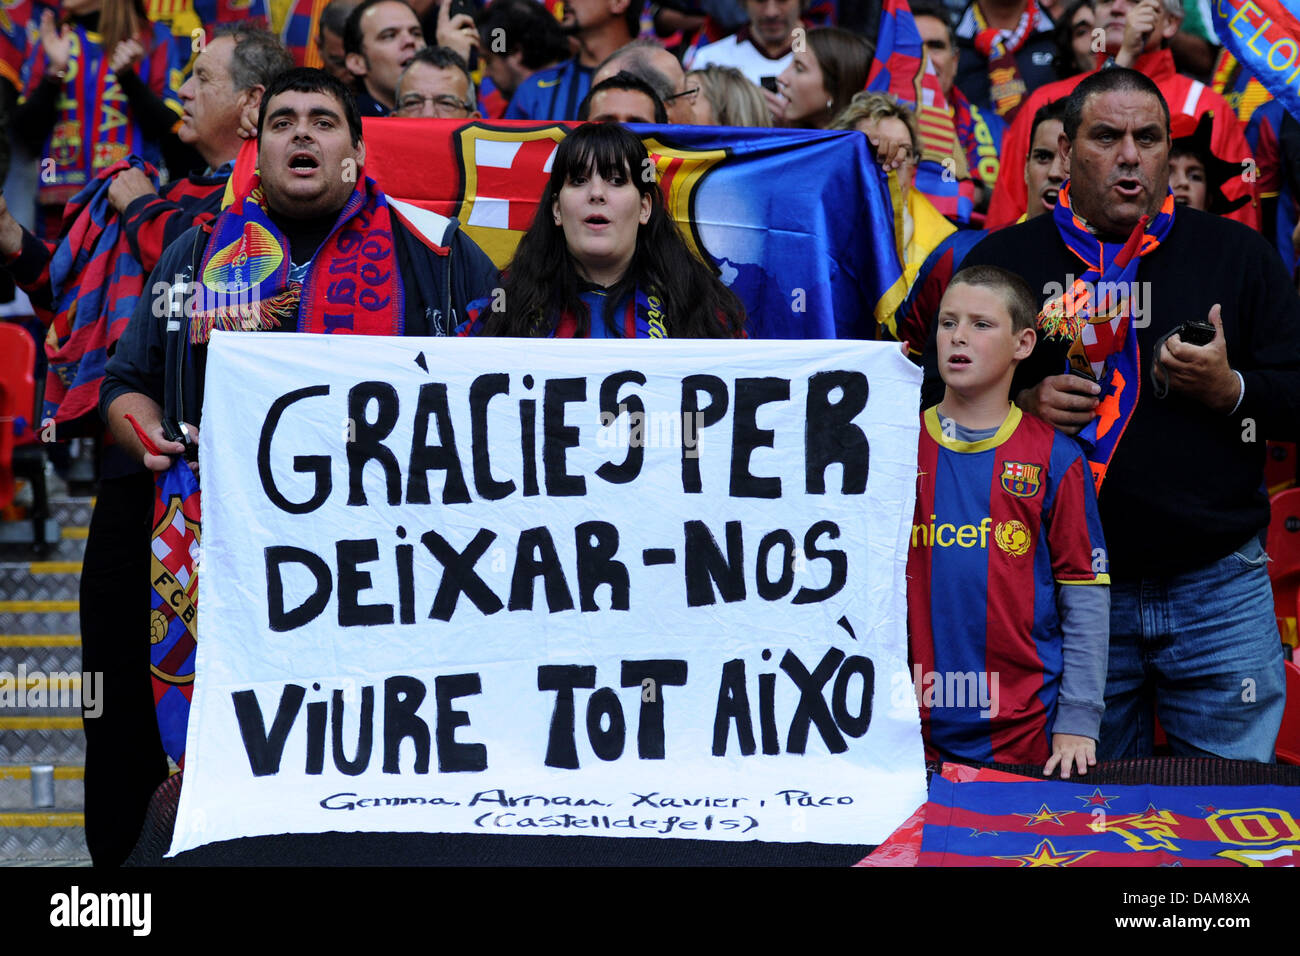 Barcelona's fans celebrate in the UEFAChampions League final FC Barcelona vs Manchester United atWembley - Stock Image